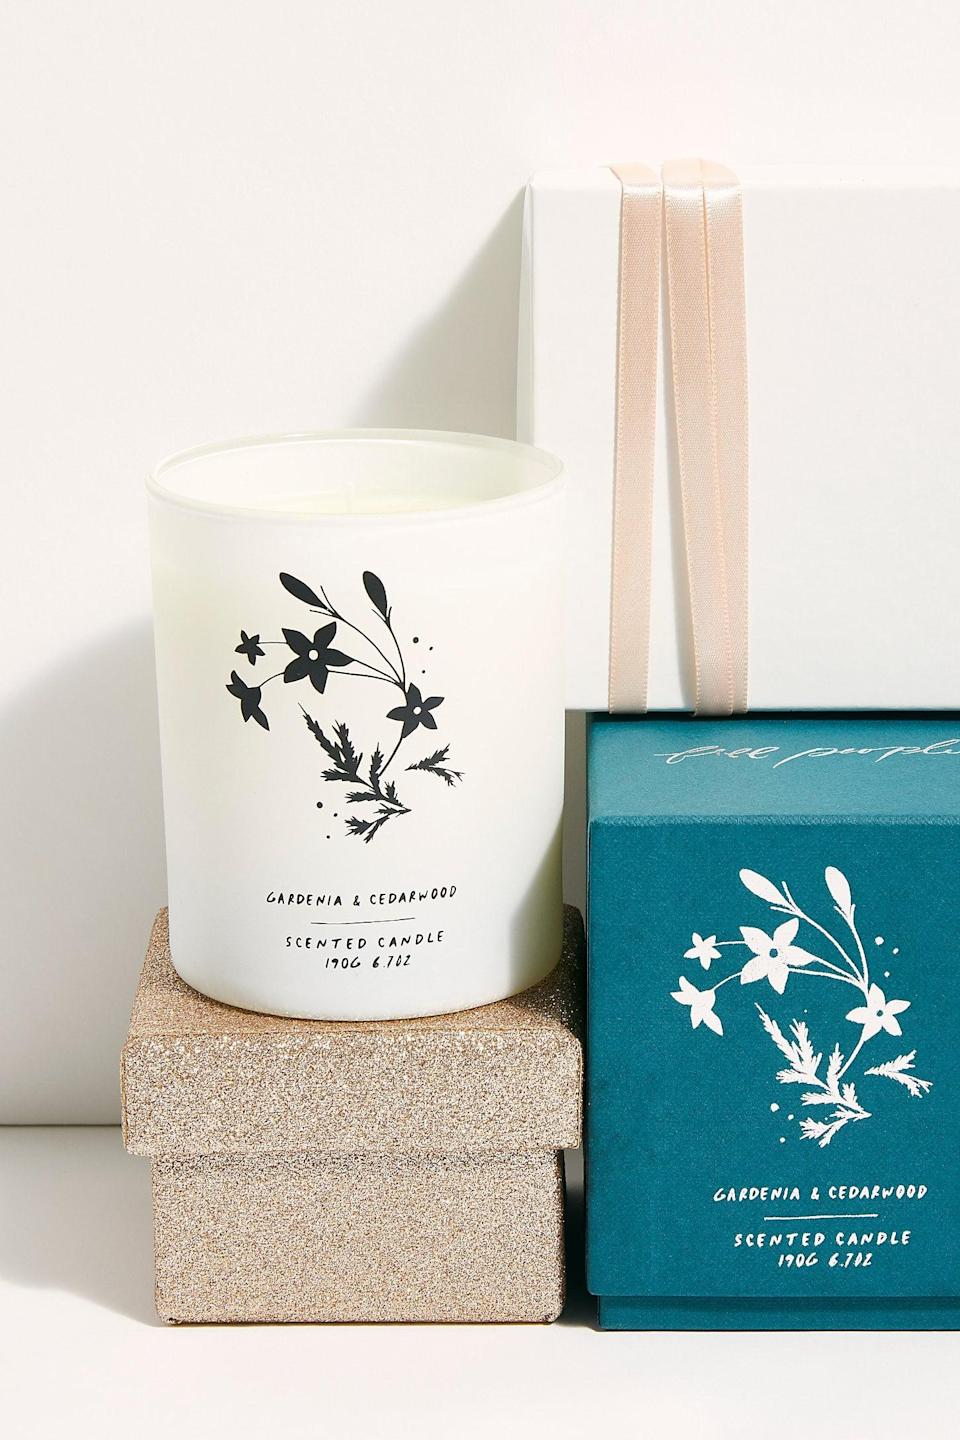 """<p>This <a href=""""https://www.popsugar.com/buy/Free-People-Gardenia-Cedarwood-Candle-527165?p_name=Free%20People%20Gardenia%20%2B%20Cedarwood%20Candle&retailer=freepeople.com&pid=527165&price=38&evar1=fab%3Aus&evar9=45460327&evar98=https%3A%2F%2Fwww.popsugar.com%2Ffashion%2Fphoto-gallery%2F45460327%2Fimage%2F46978016%2FFree-People-Gardenia-Cedarwood-Candle&list1=shopping%2Cgifts%2Cfree%20people%2Choliday%2Cgift%20guide%2Cgifts%20for%20women&prop13=api&pdata=1"""" class=""""link rapid-noclick-resp"""" rel=""""nofollow noopener"""" target=""""_blank"""" data-ylk=""""slk:Free People Gardenia + Cedarwood Candle"""">Free People Gardenia + Cedarwood Candle</a> ($38) always makes for a great present.</p>"""